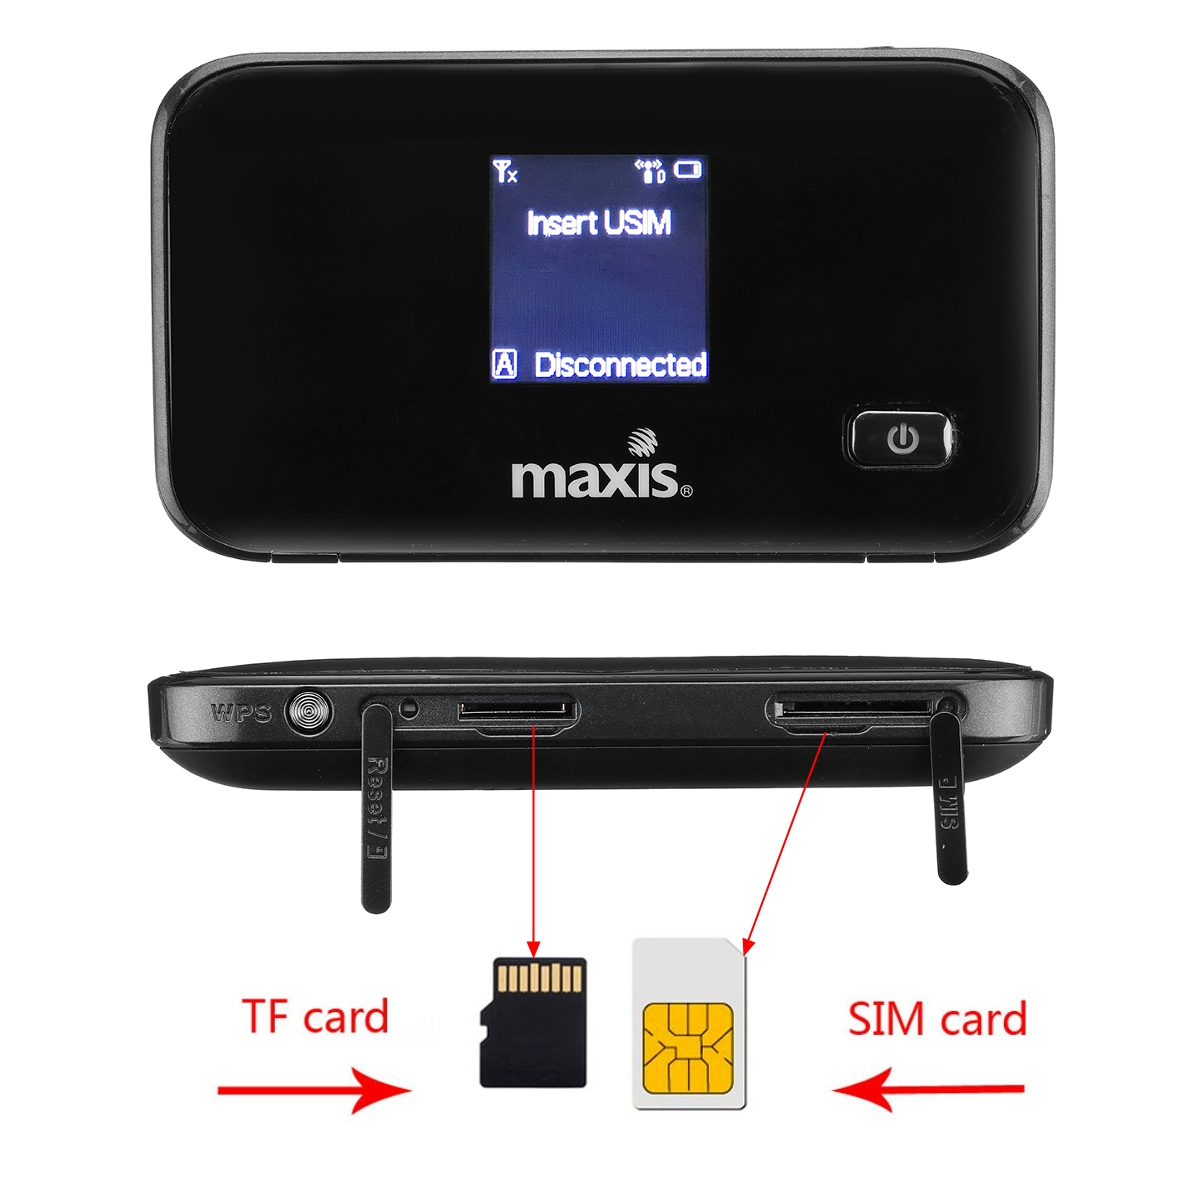 4G 3G LTE Portable Wireless Mobile Hotspot Router with SIM TF Card Slot for iPhone Mobile Phone